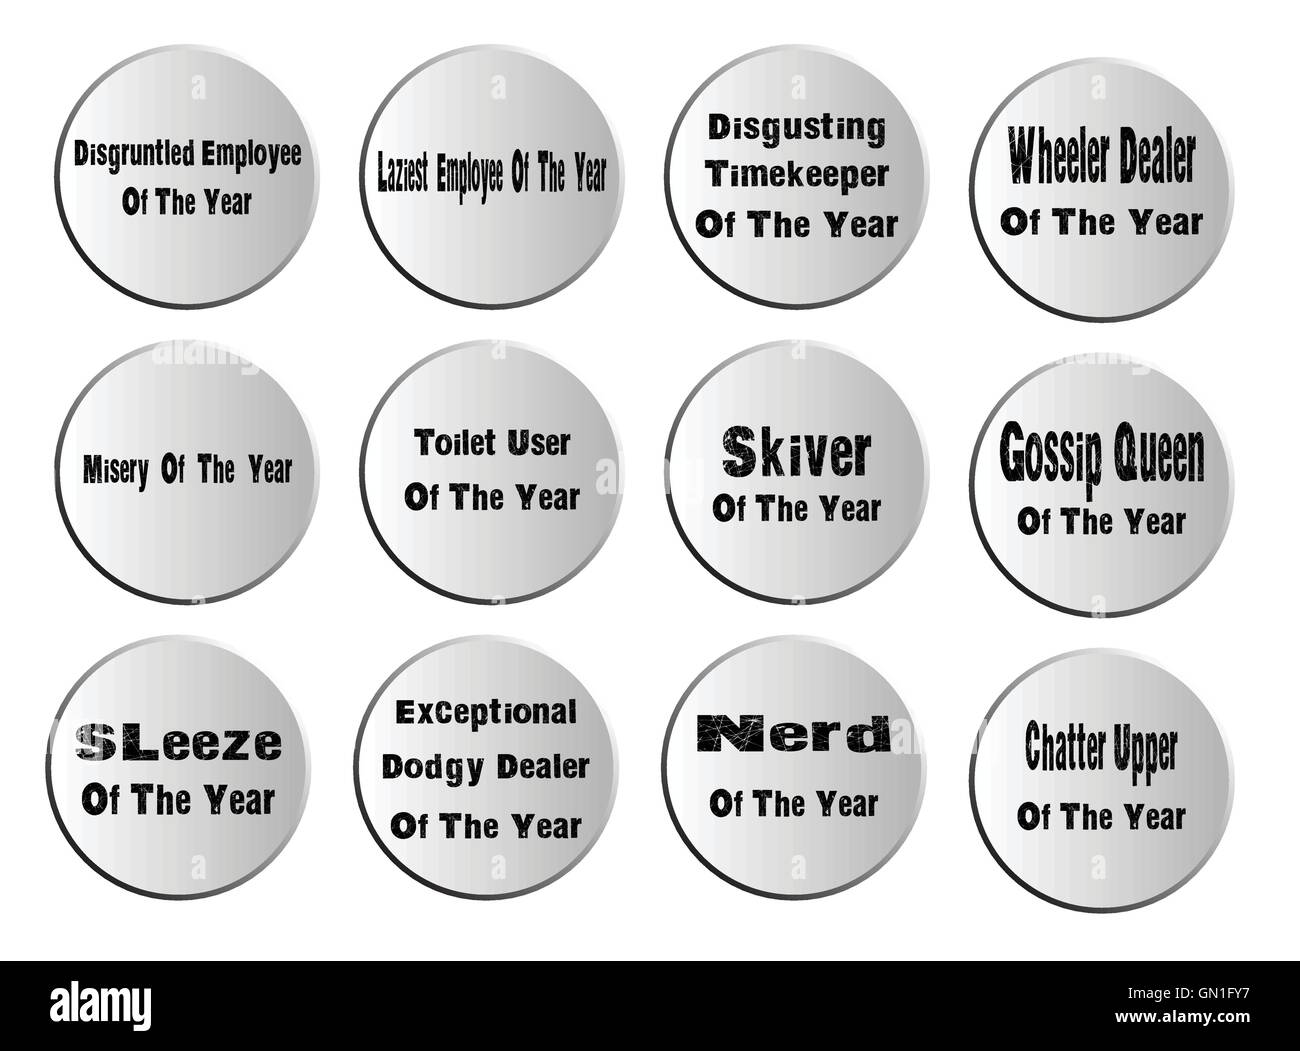 Of The Year Badges - Stock Image